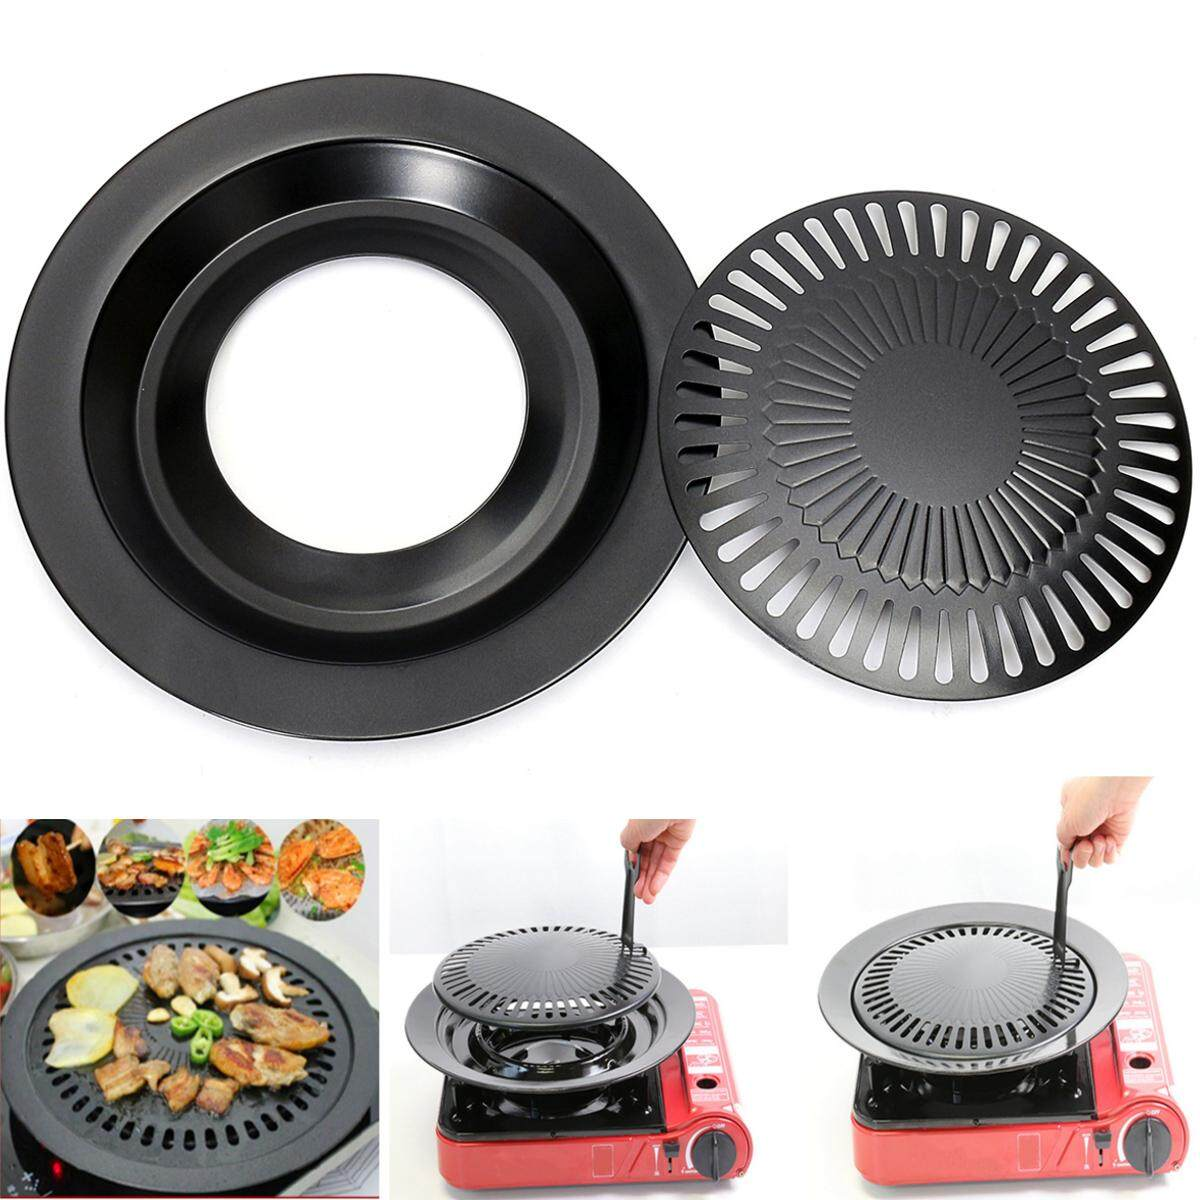 Round Iron Korean Bbq Grill Plate Barbecue Non Stick Pan Set With Holder